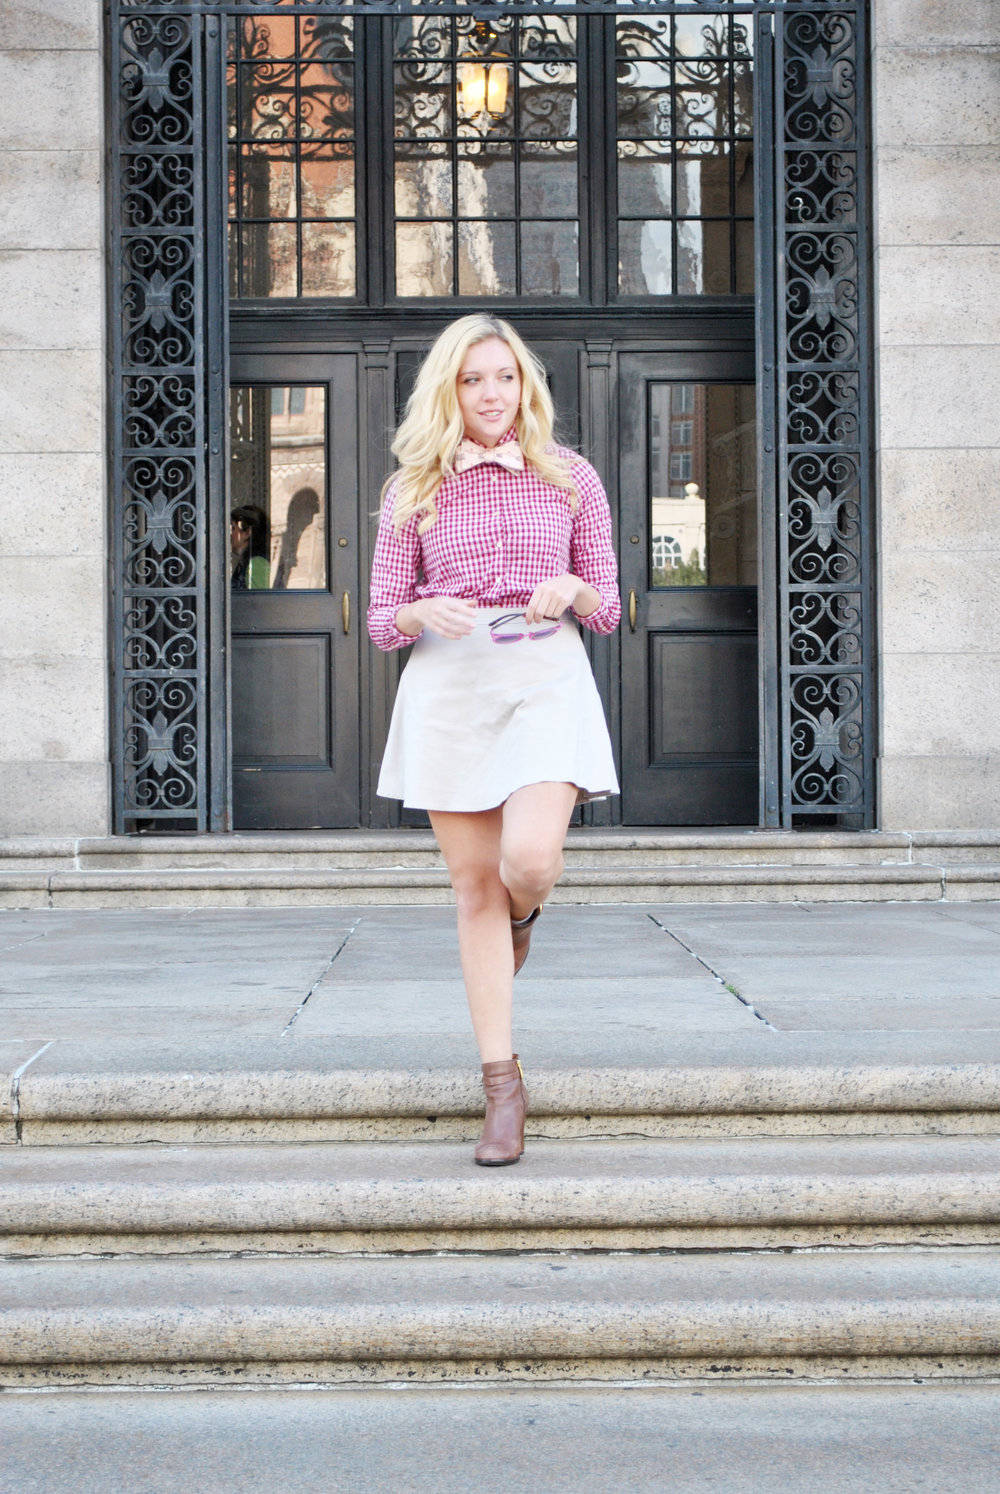 thoughtfulwish | oootie // bow tie // copley // boston // fblog // fashion blogger // preppy // fall outfit // meredith wish